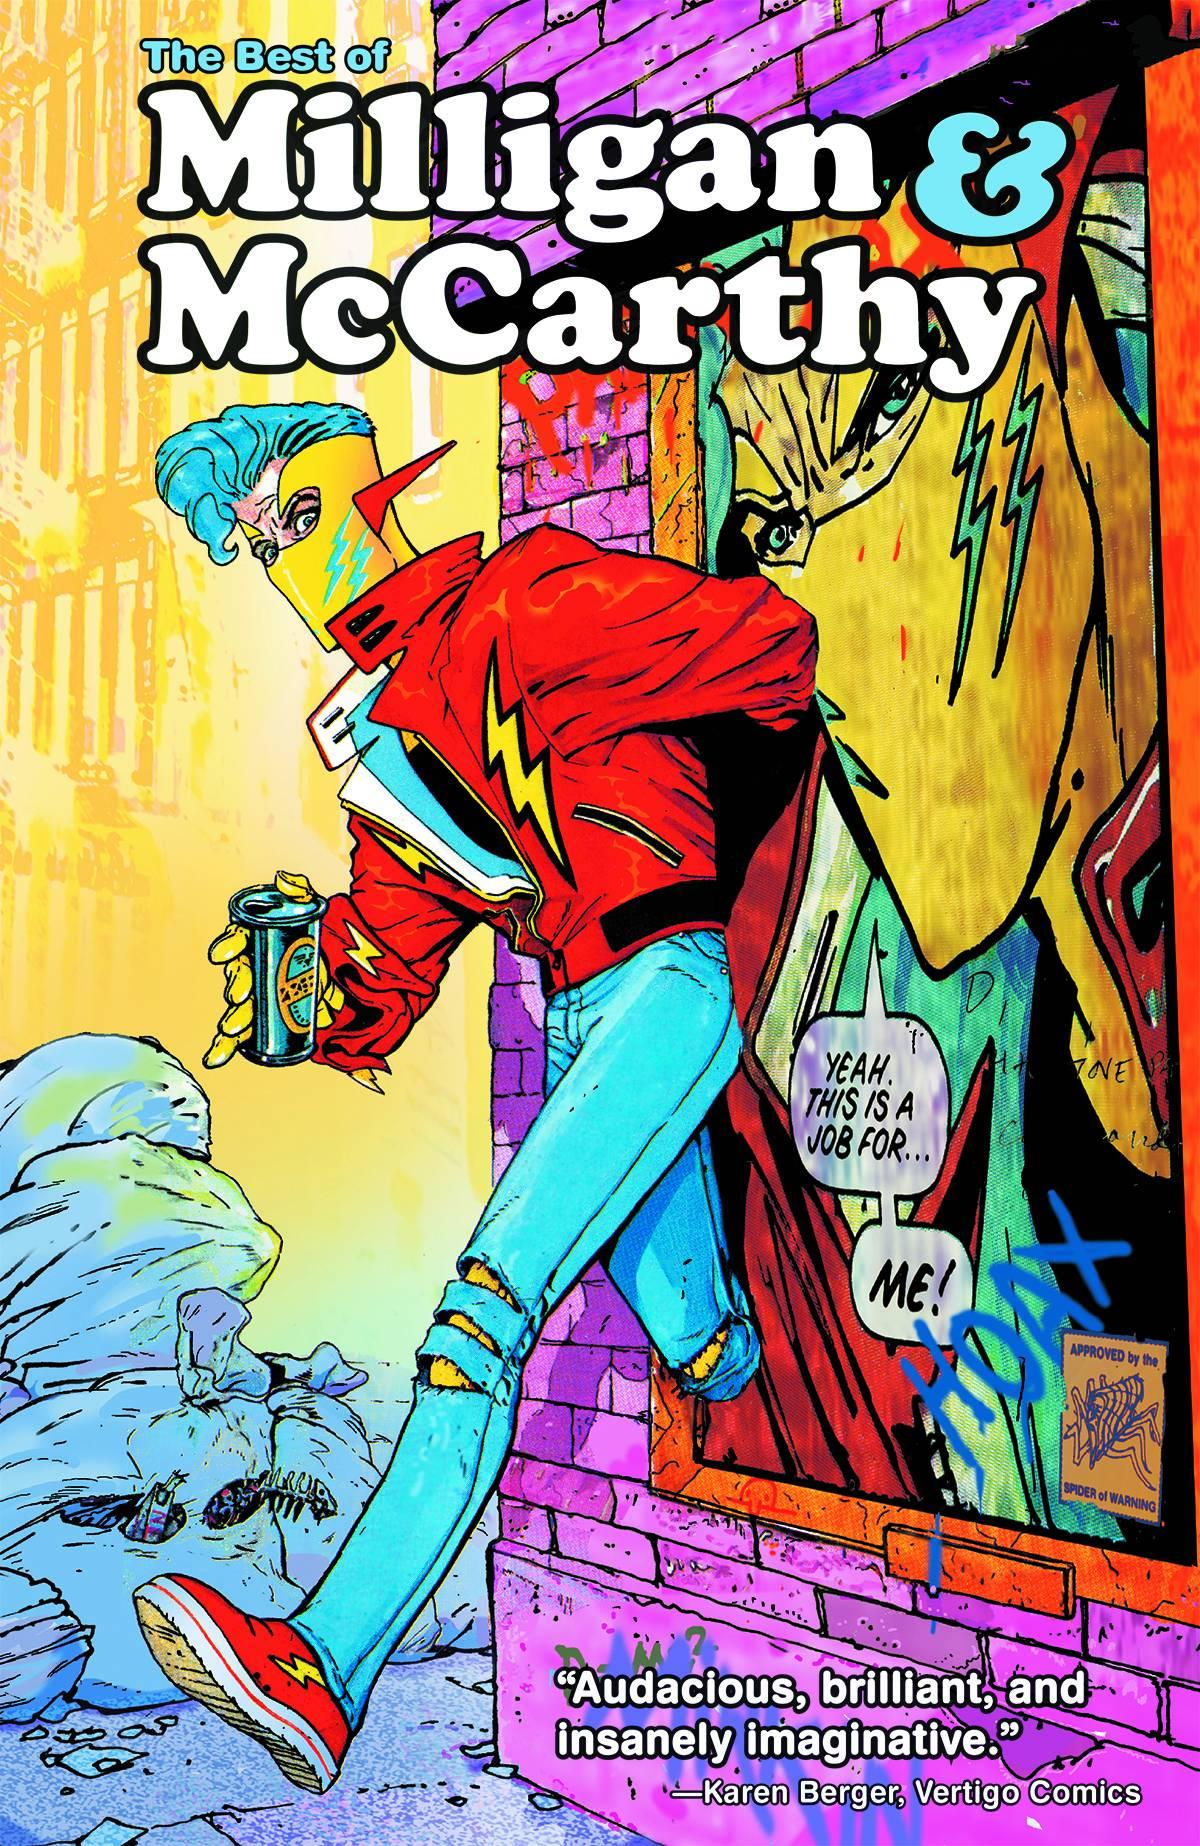 [Milligan & McCarthy sign The Best Of Milligan & McCarthy]